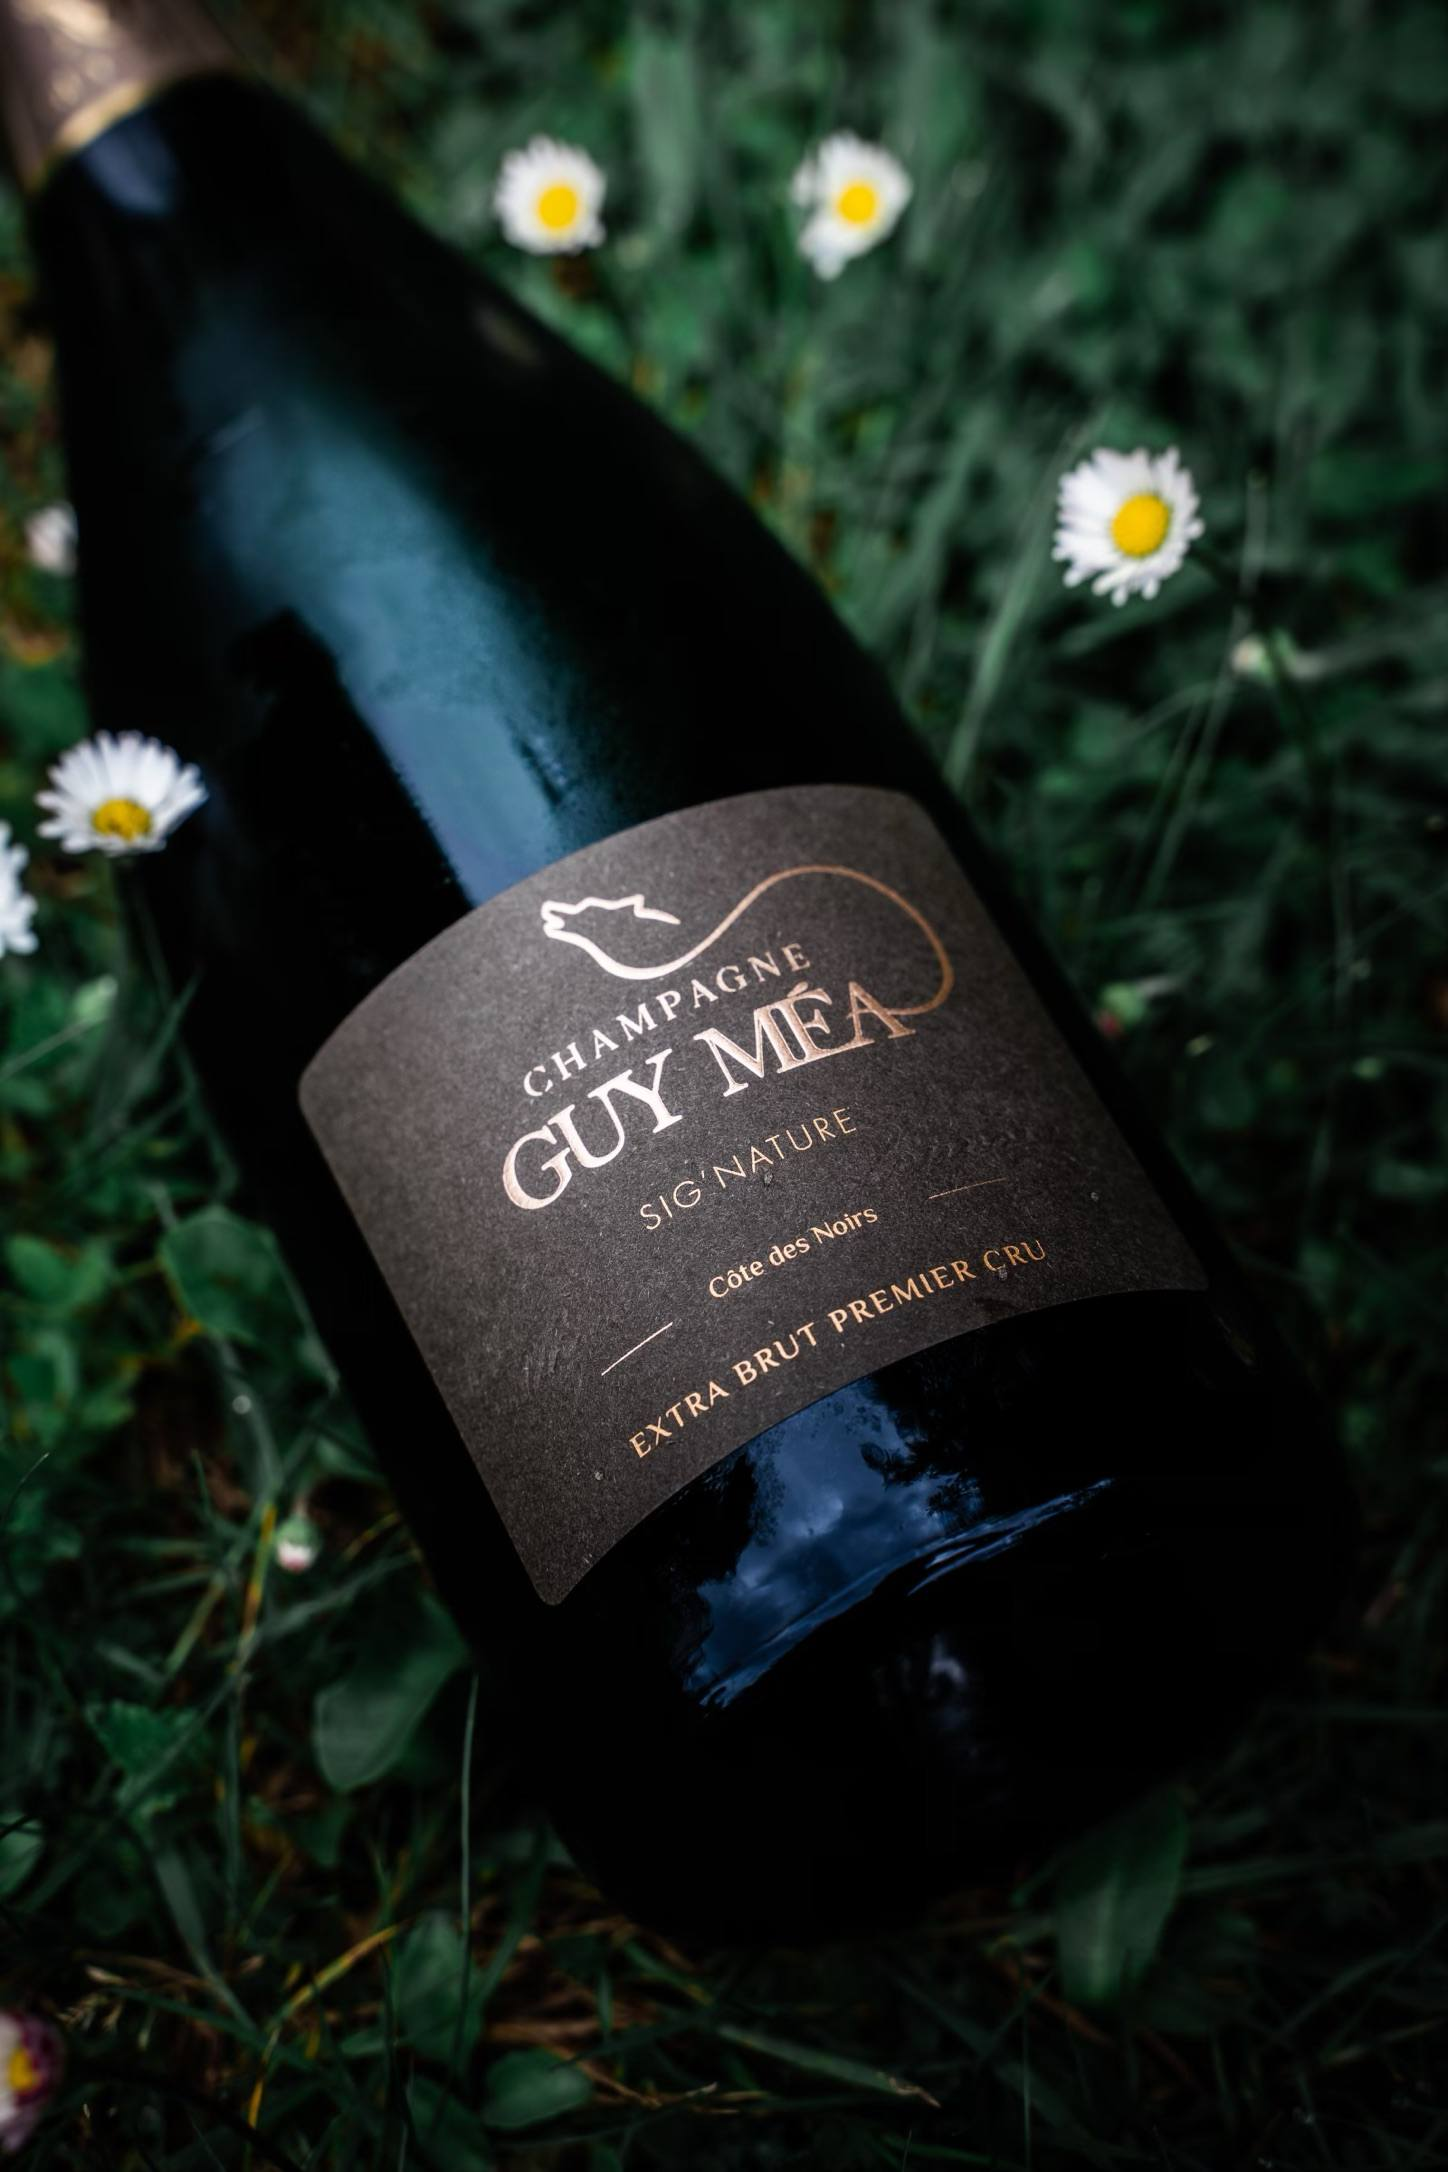 Sig'nature - Champagne Guy Mea